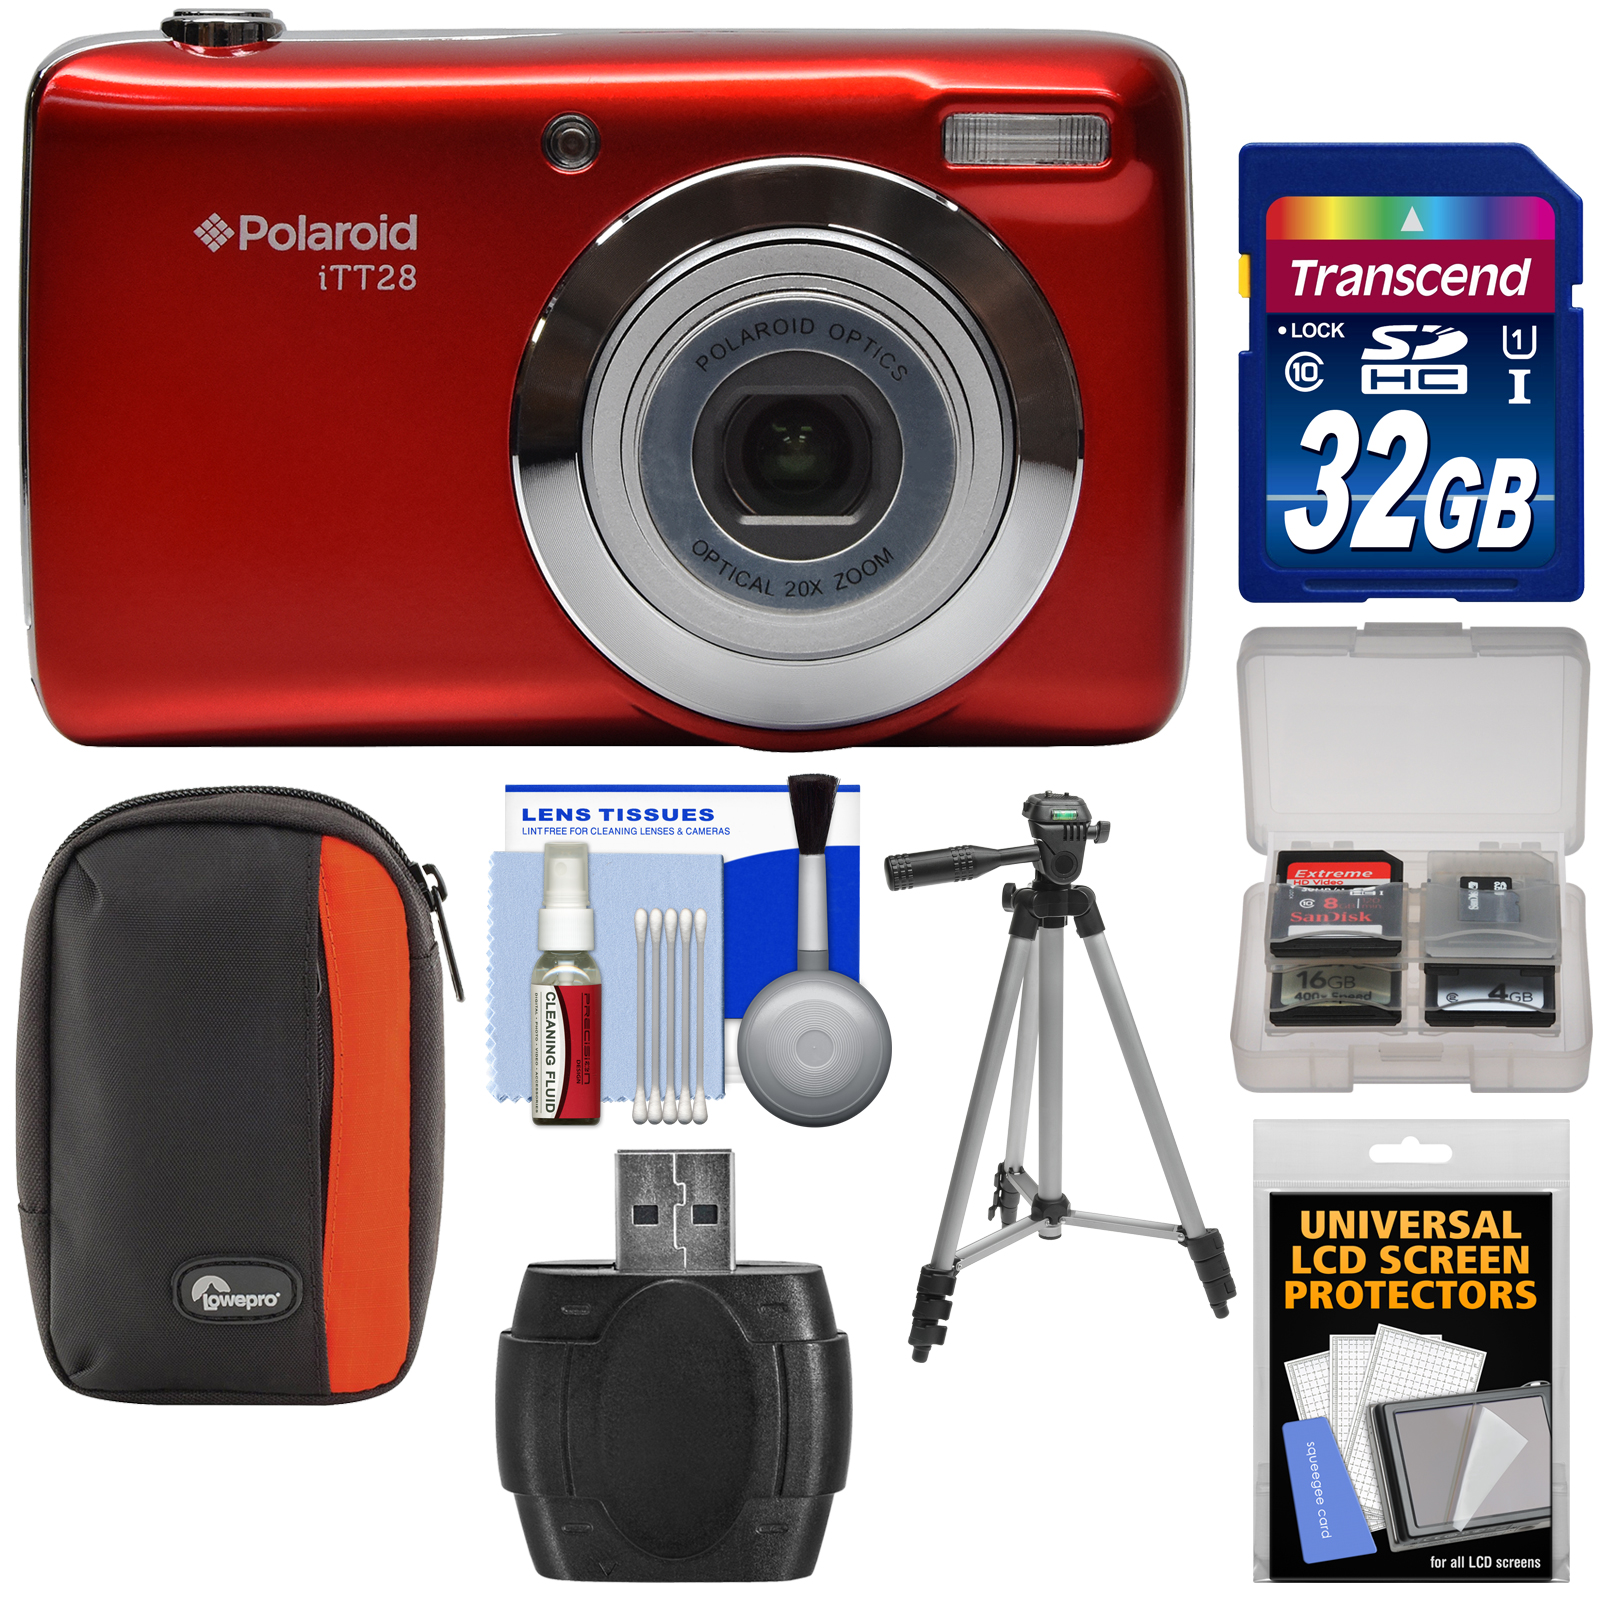 Polaroid iTT28 20MP 20x Zoom Digital Camera (Red) with 32GB Card + Case + Tripod + Kit by Polaroid